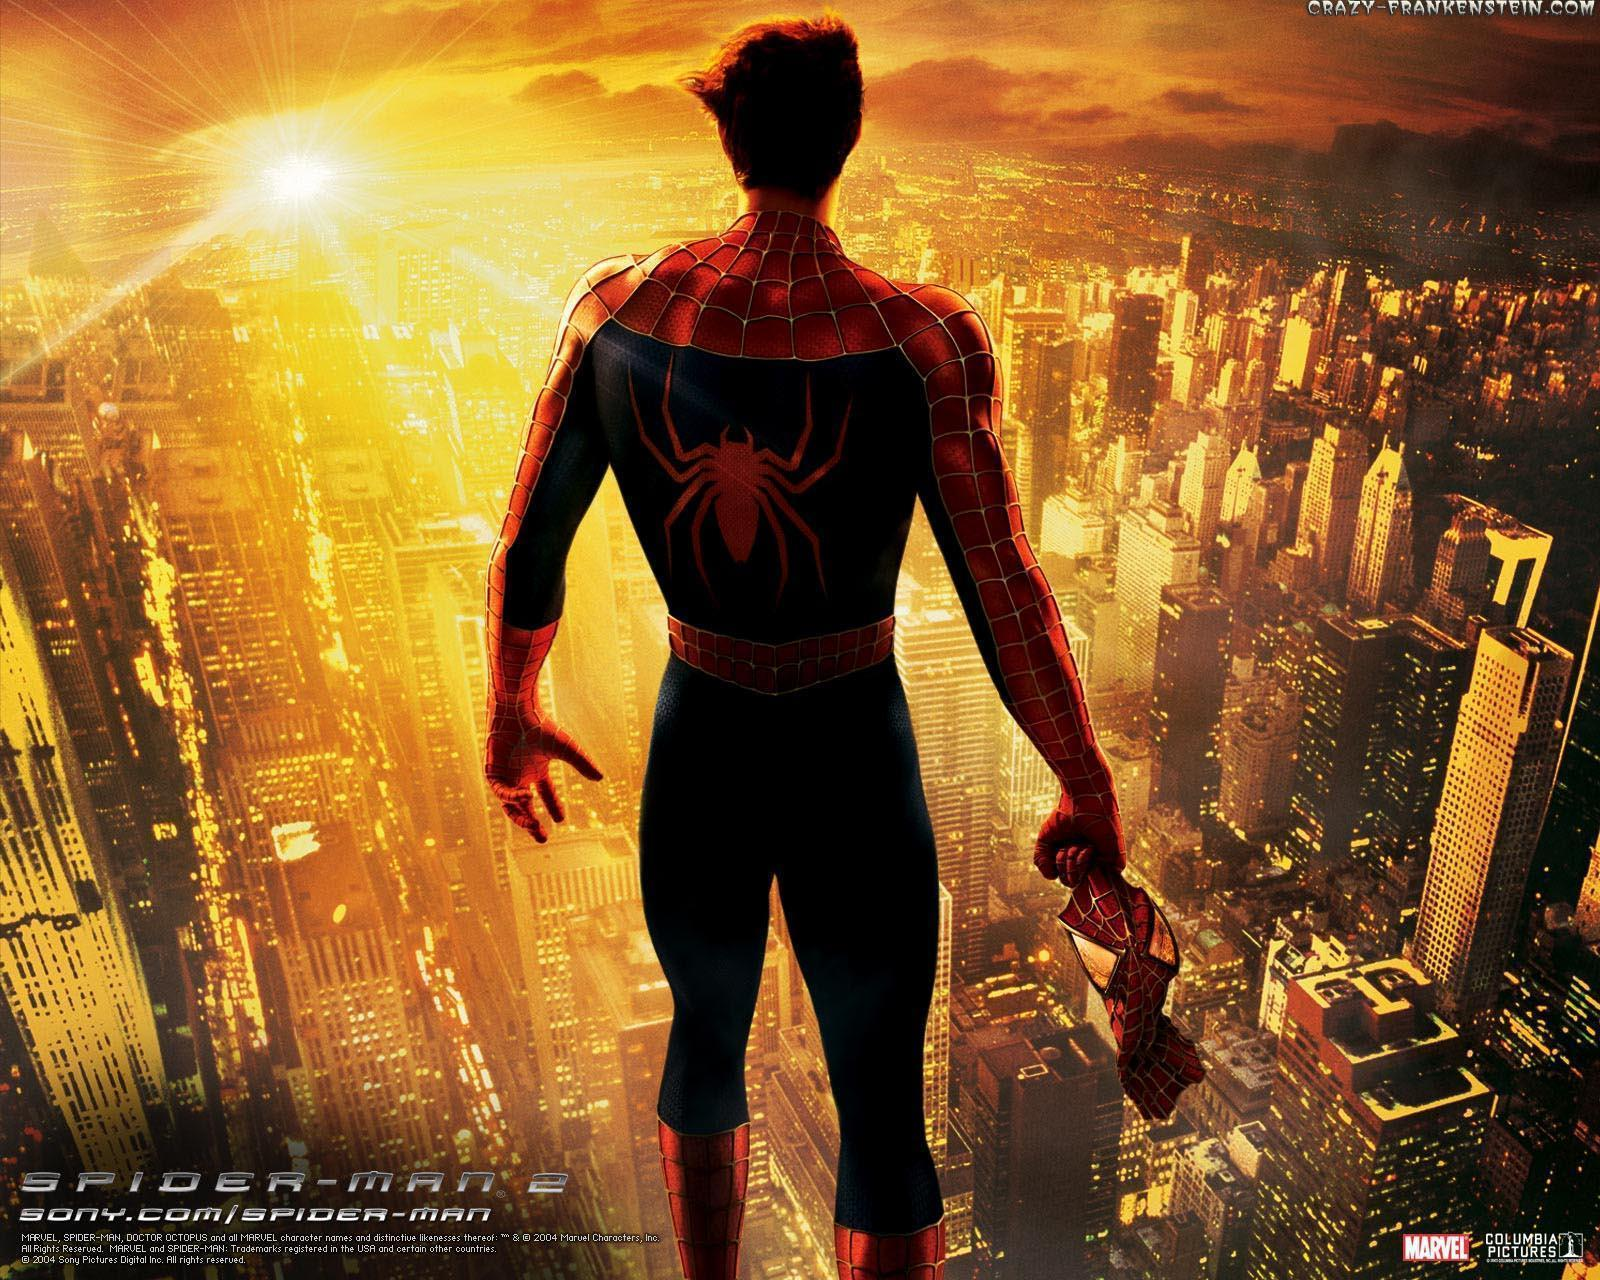 Spiderman 2 HD Desktop 1920 X 1080 Wallpapers | Sports Wallpaper ...